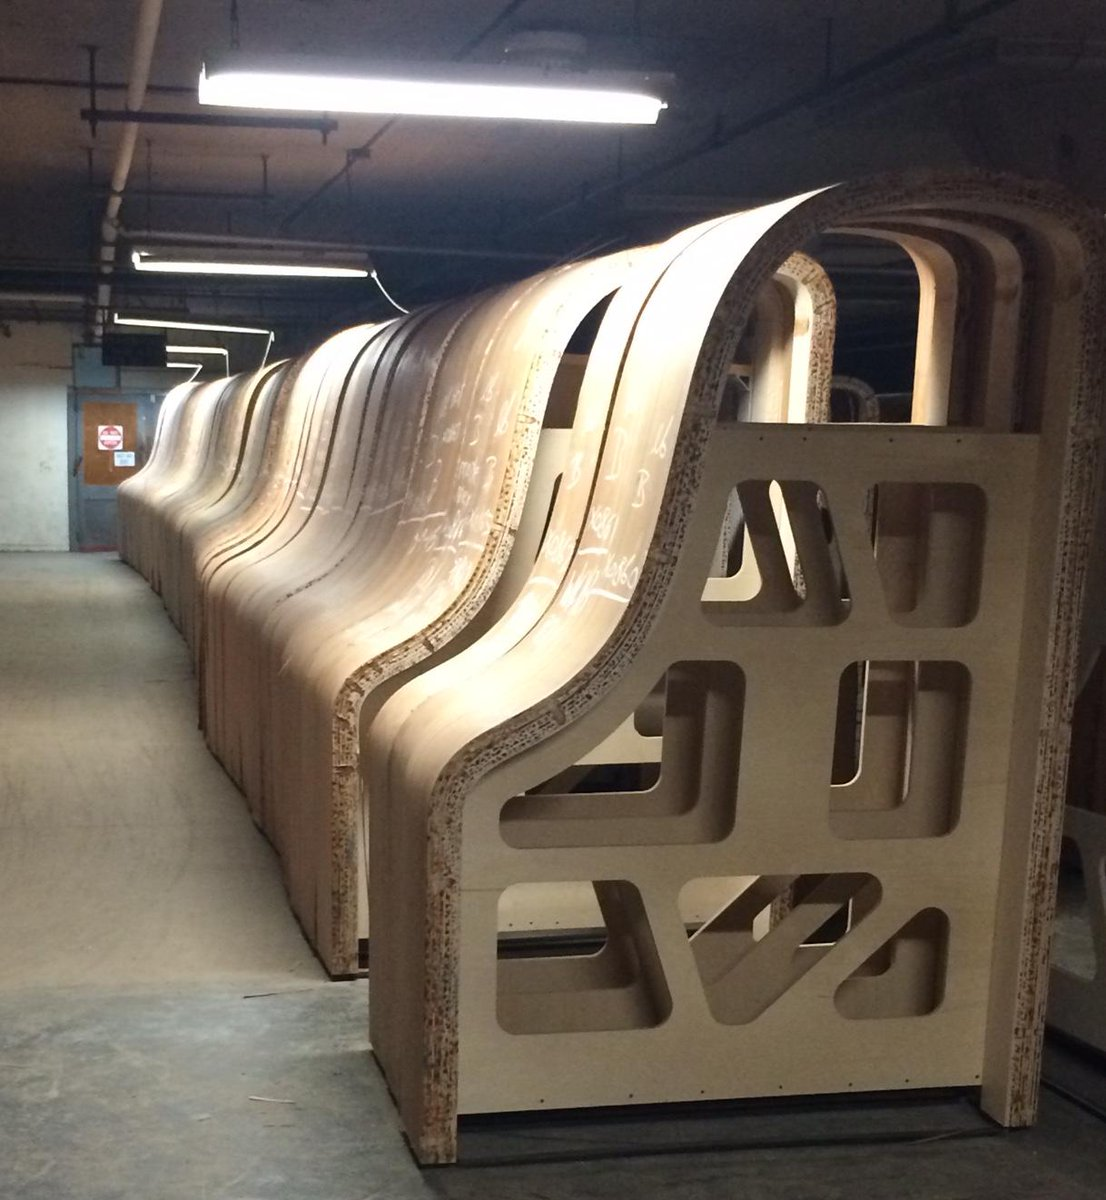 Beautiful pics from AMFS's tour of the Steinway factory today. Thanks @SteinwayAndSons! http://t.co/nVy2F4MNii